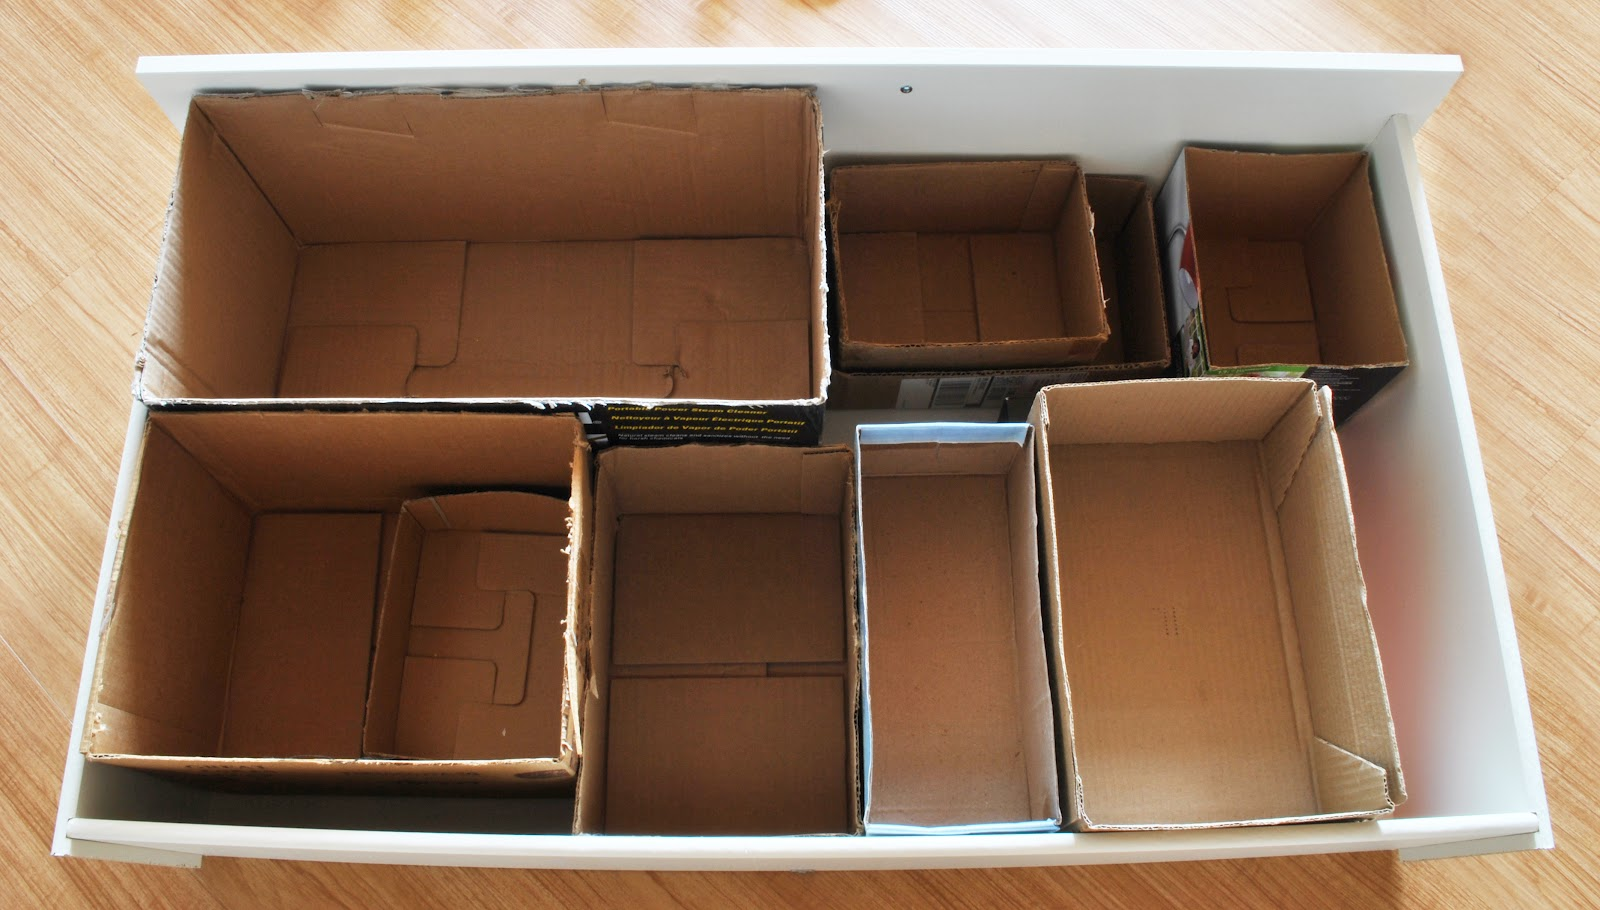 Cardboard Box Dividers Young Broke And Marvelous Cheap And Creative Storage